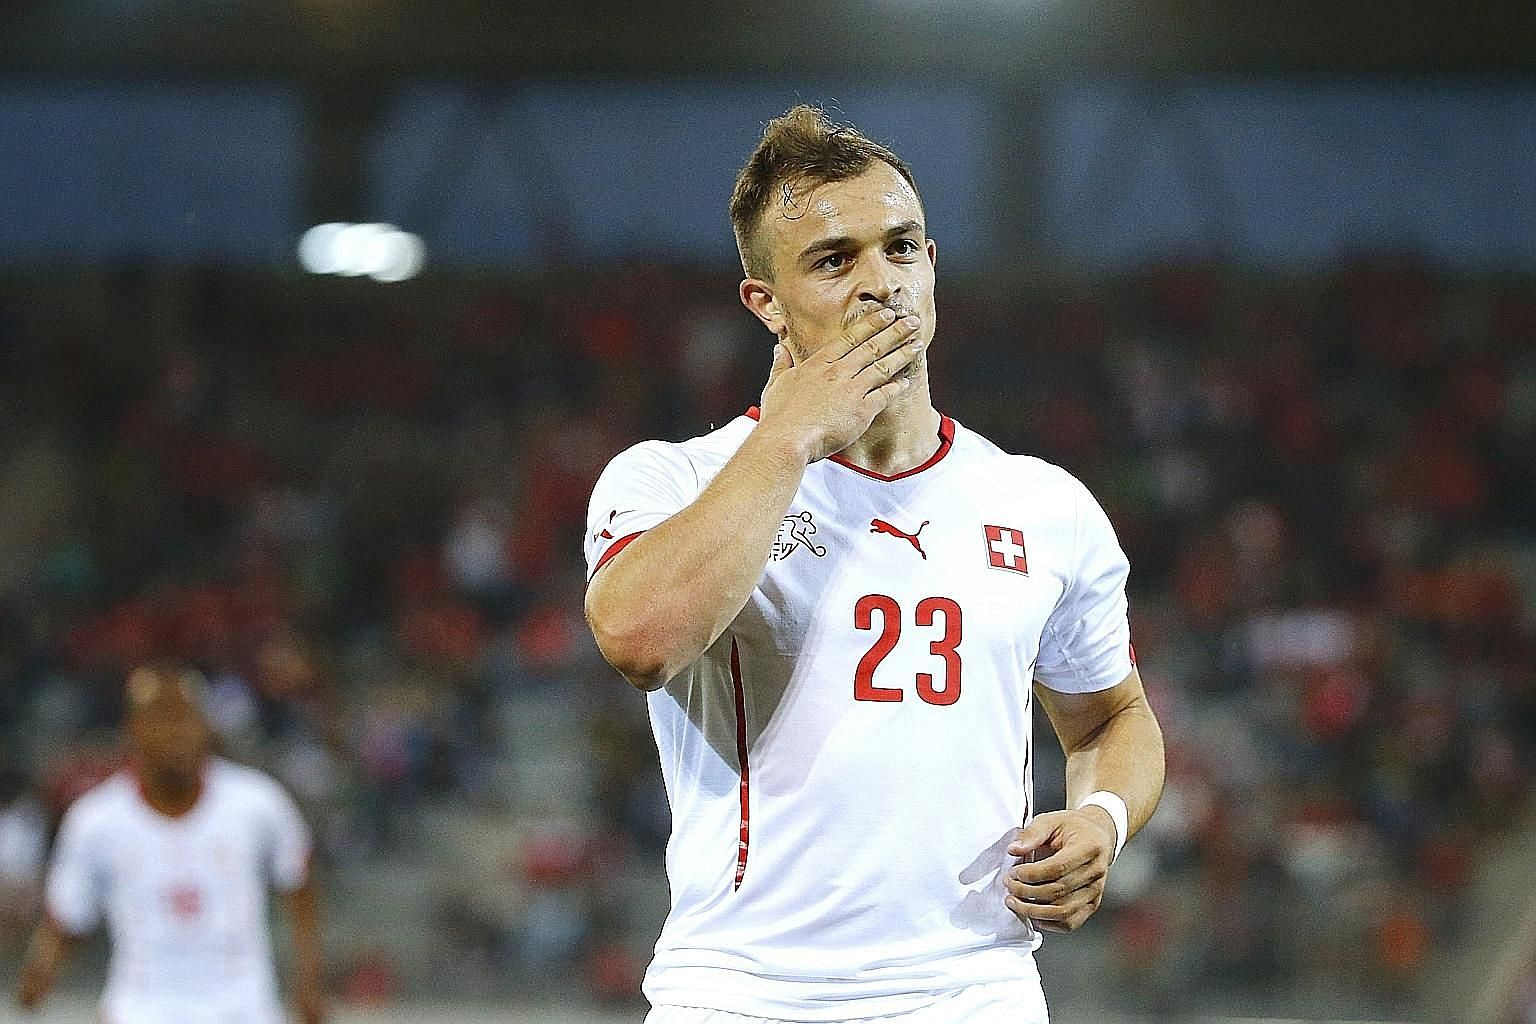 Swiss player Xherdan Shaqiri joins Stoke for £12 million, as mid-tier clubs also spend big.